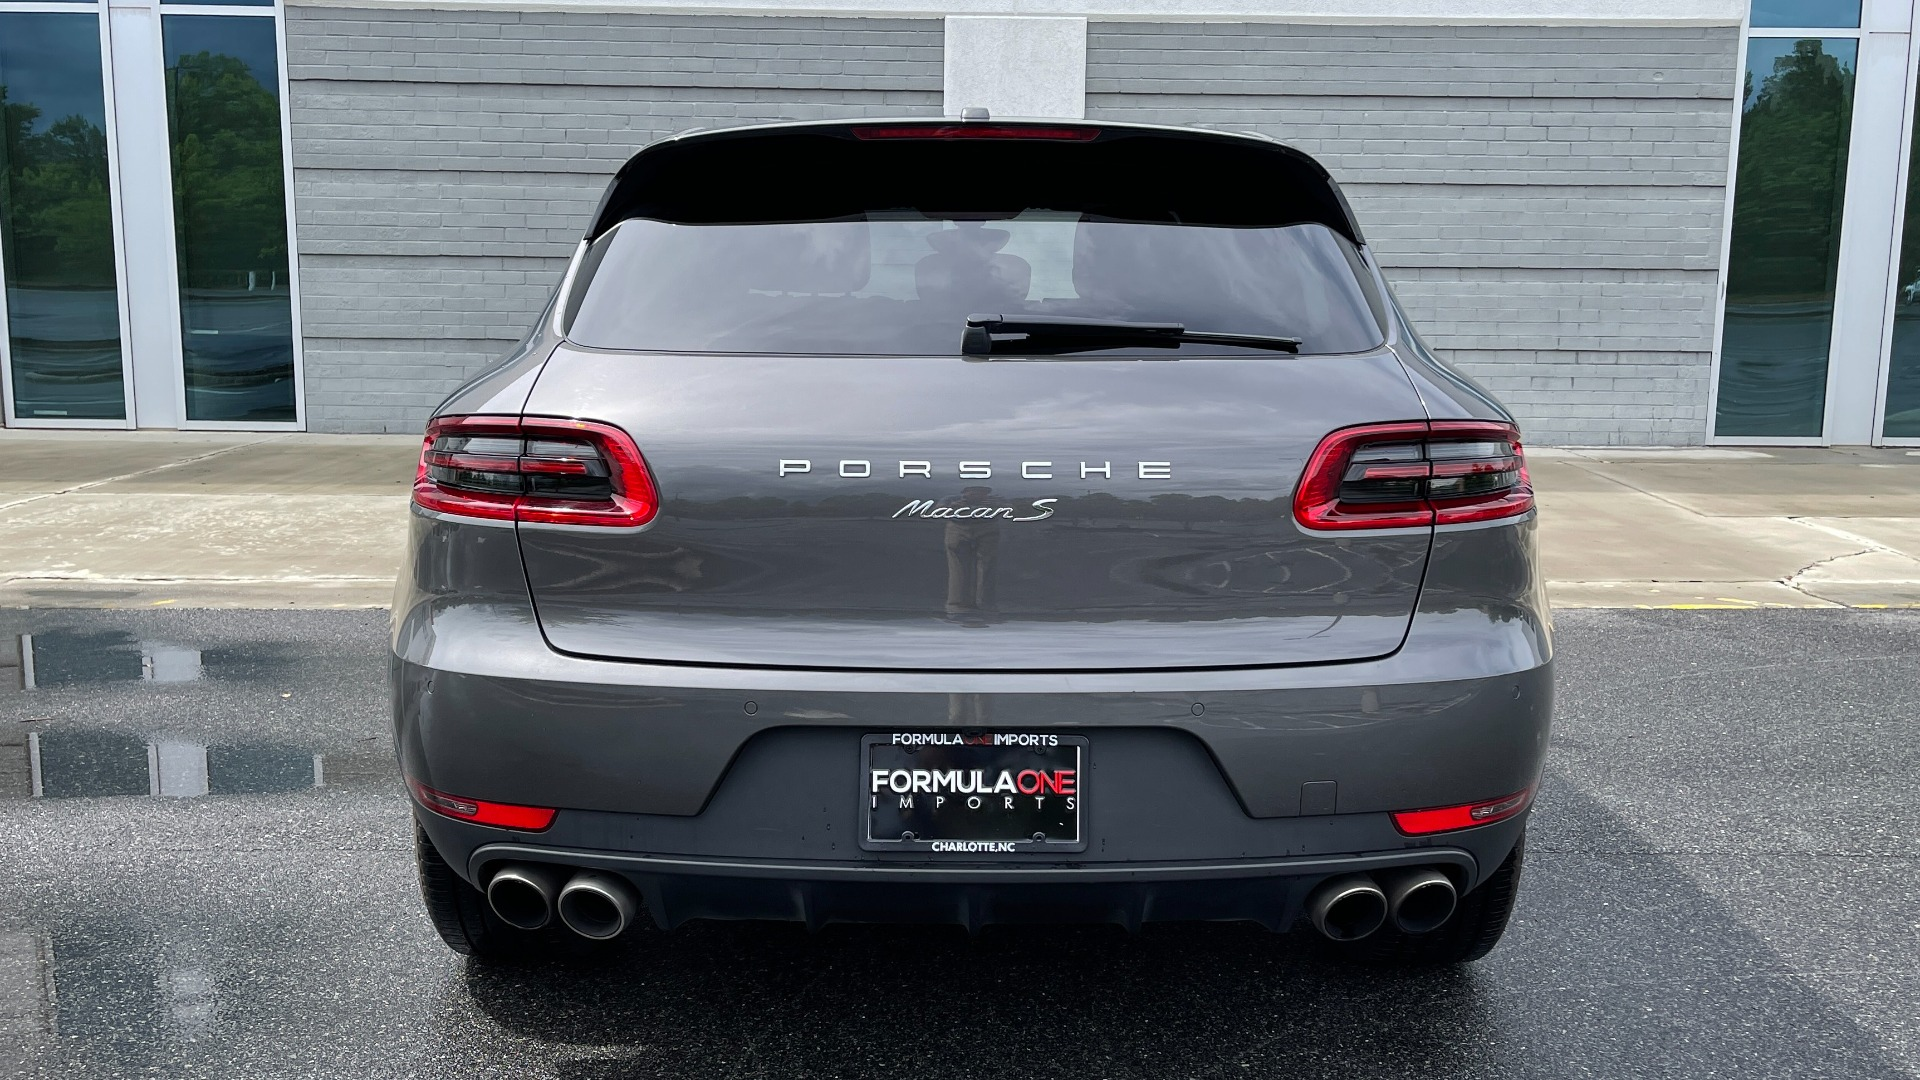 Used 2016 Porsche MACAN S PREMIUM PLUS / AWD / NAV / BOSE / SUNROOF / LCA / PARK ASST / INFOTAINMEN for sale $45,256 at Formula Imports in Charlotte NC 28227 22